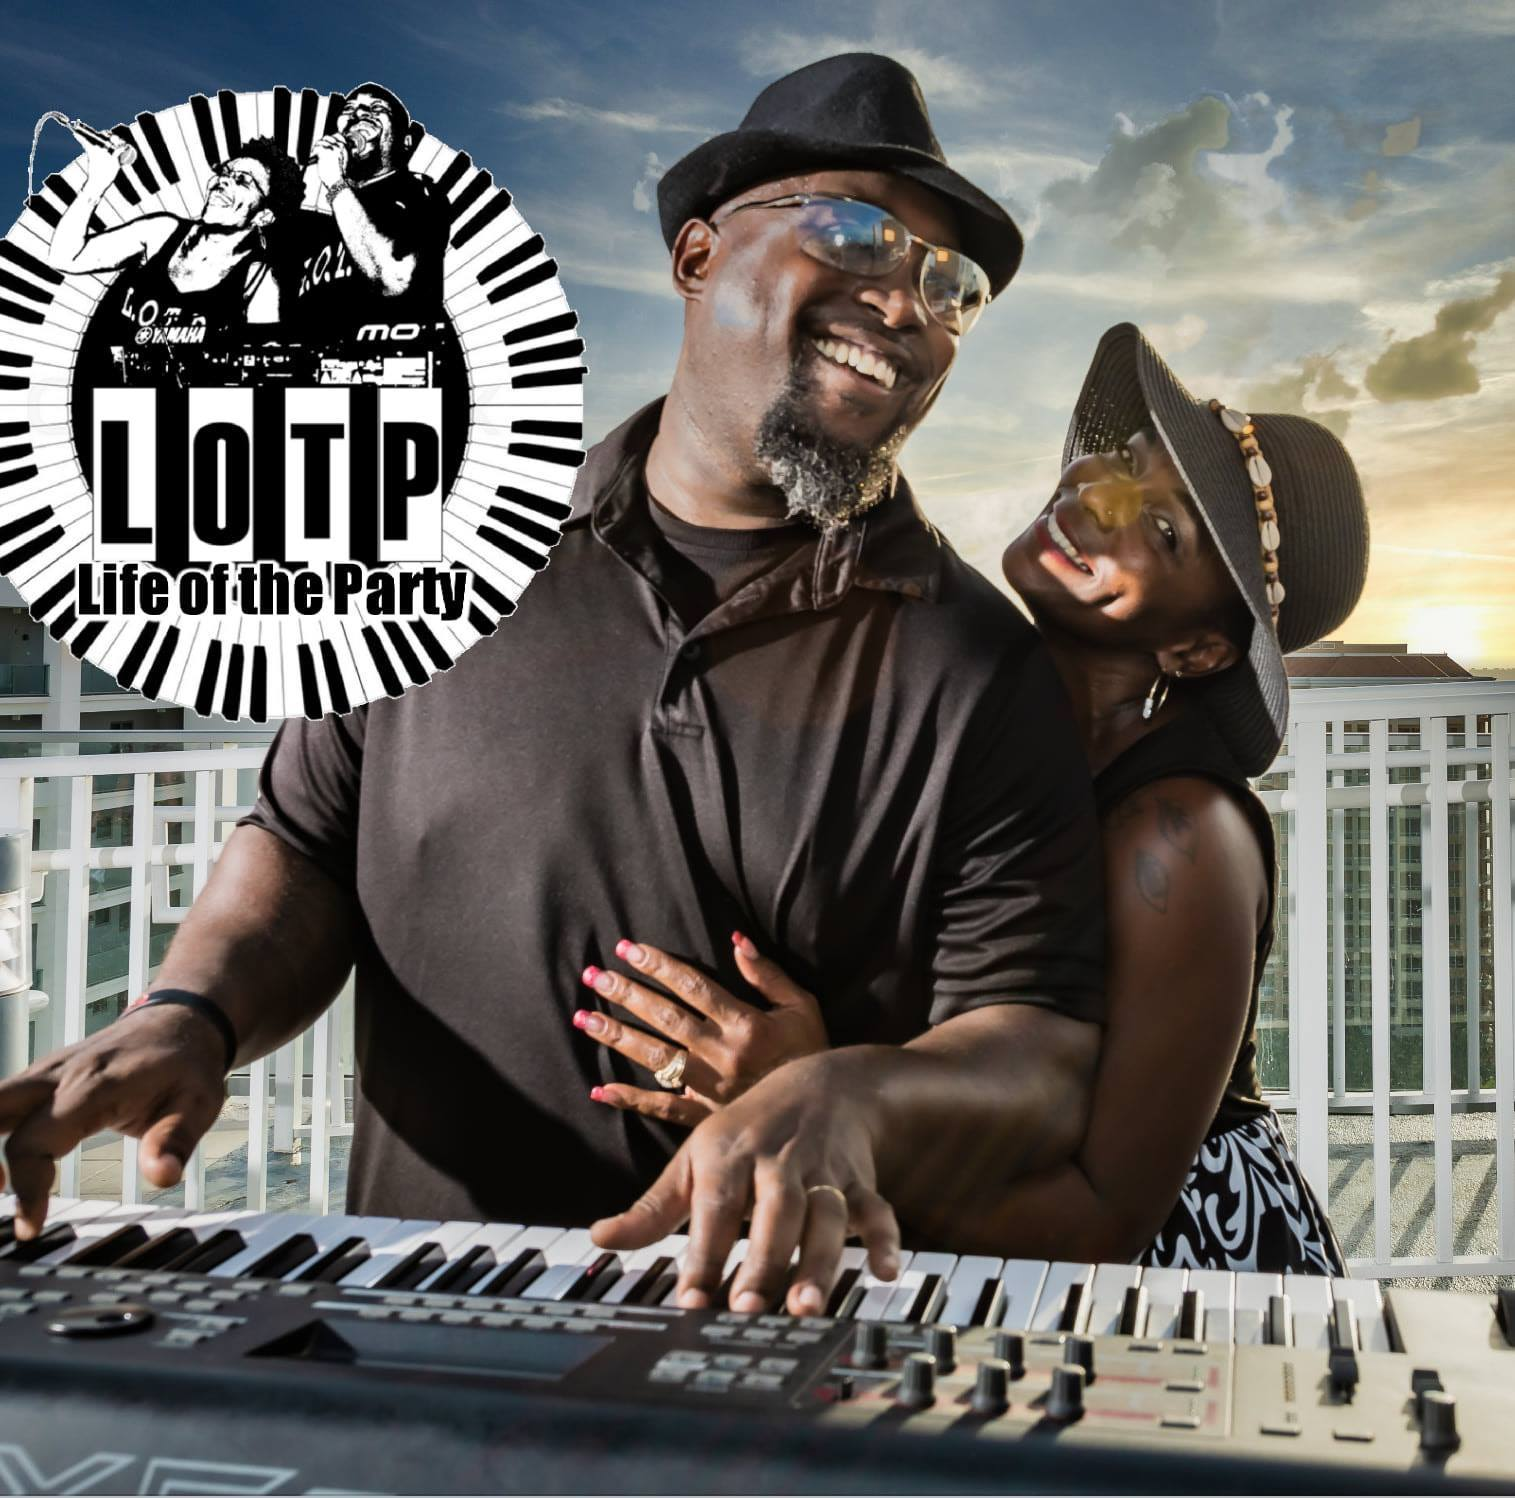 LOTP-Life of the Party